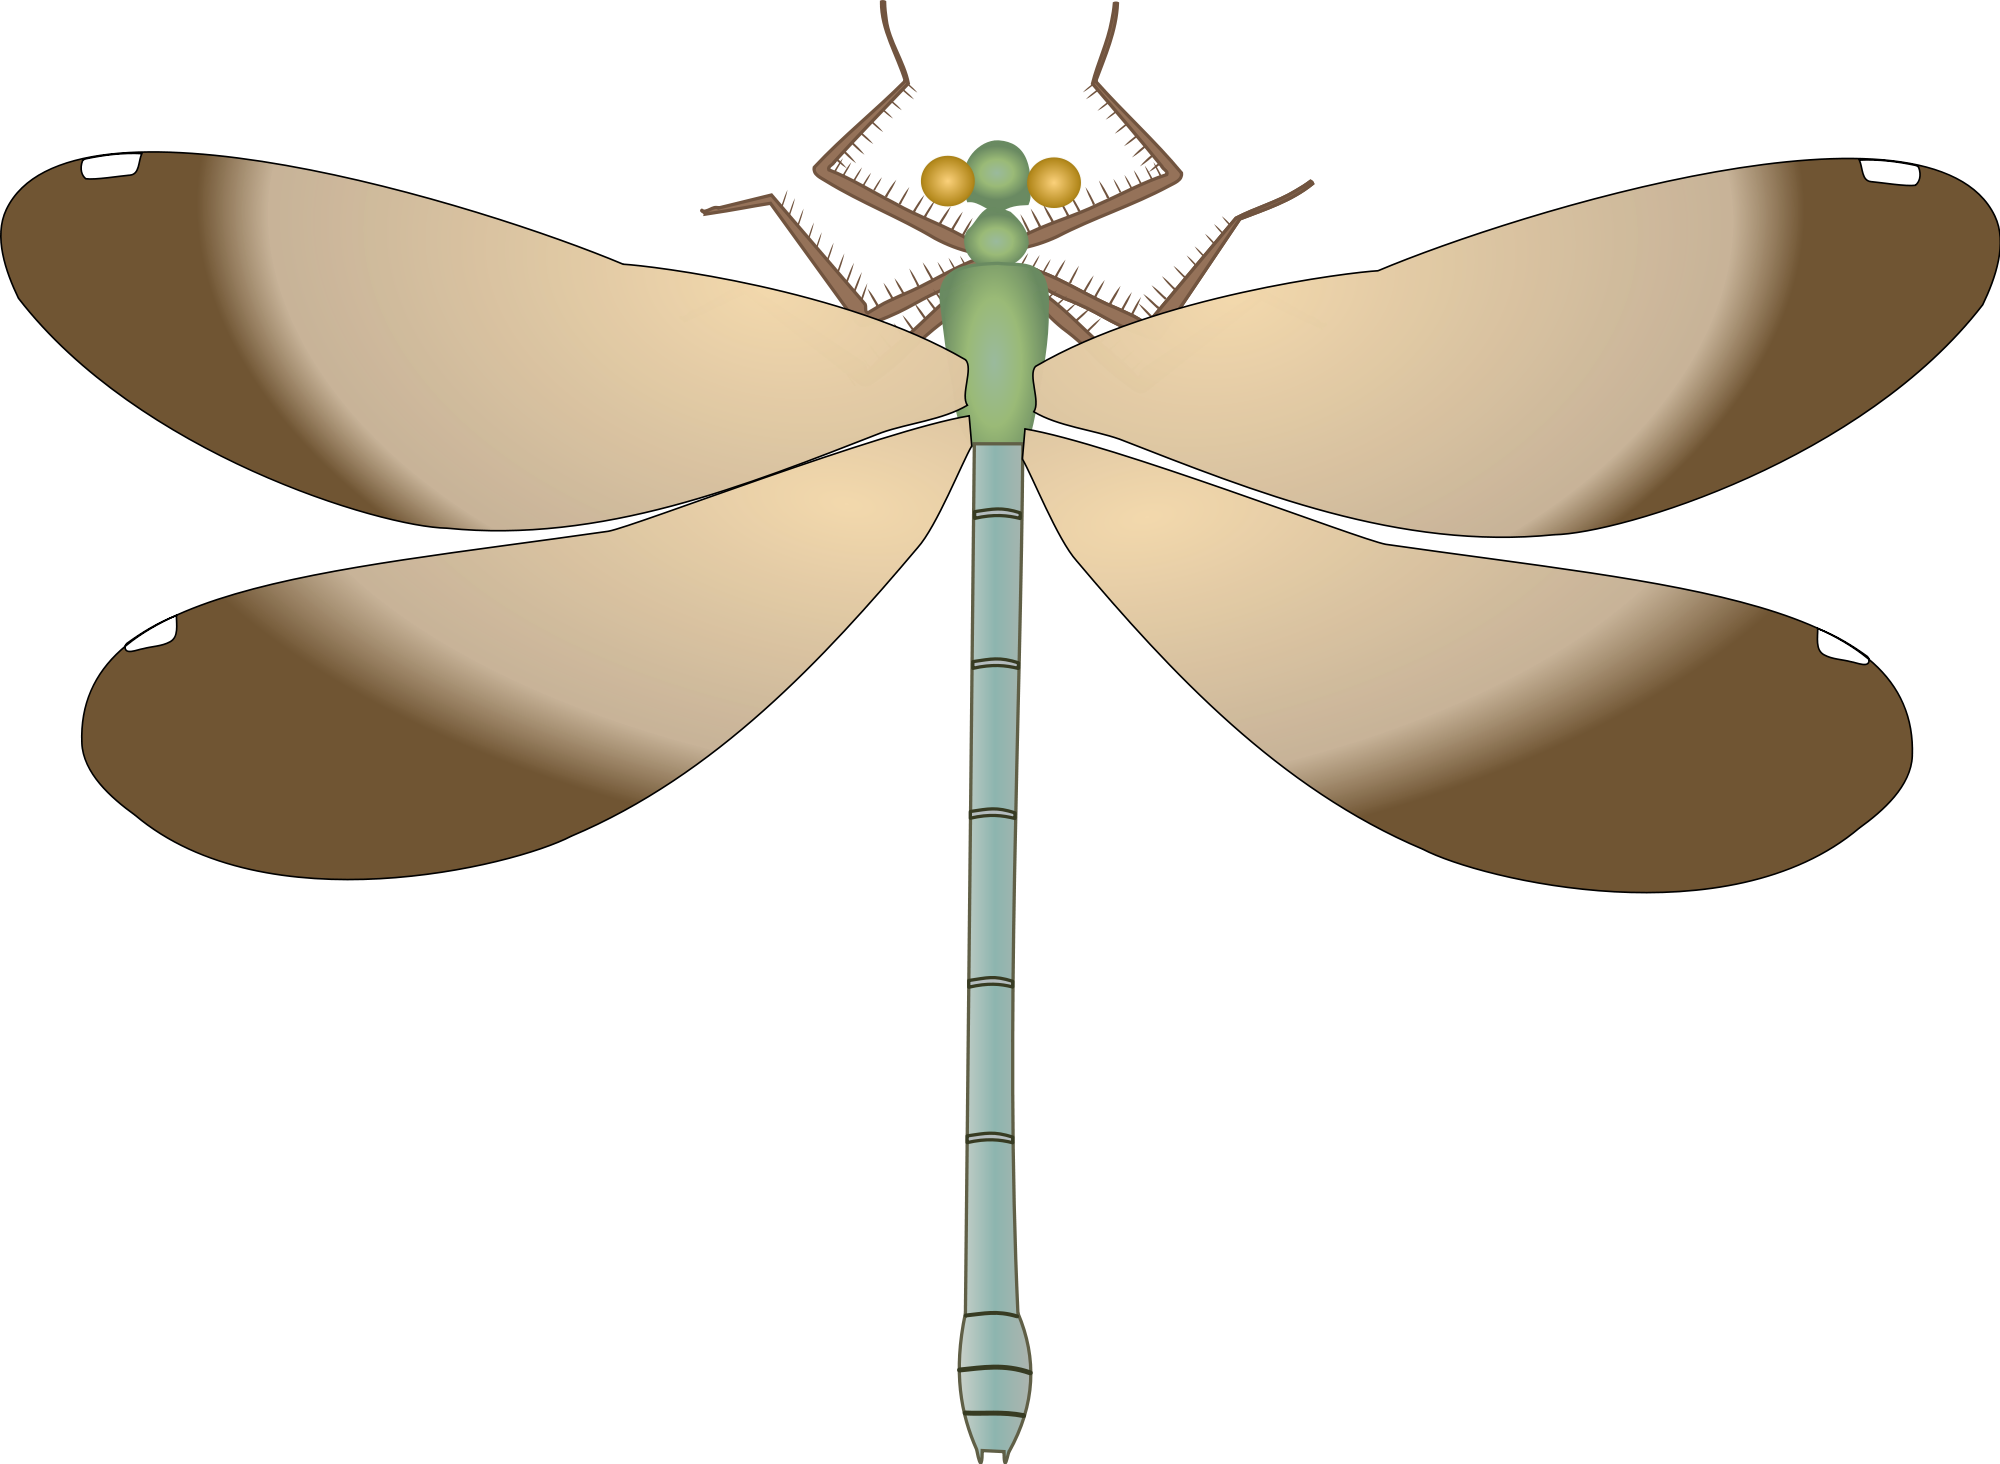 Dragonfly clipart patriotic. File calopteryx maculata wingveins